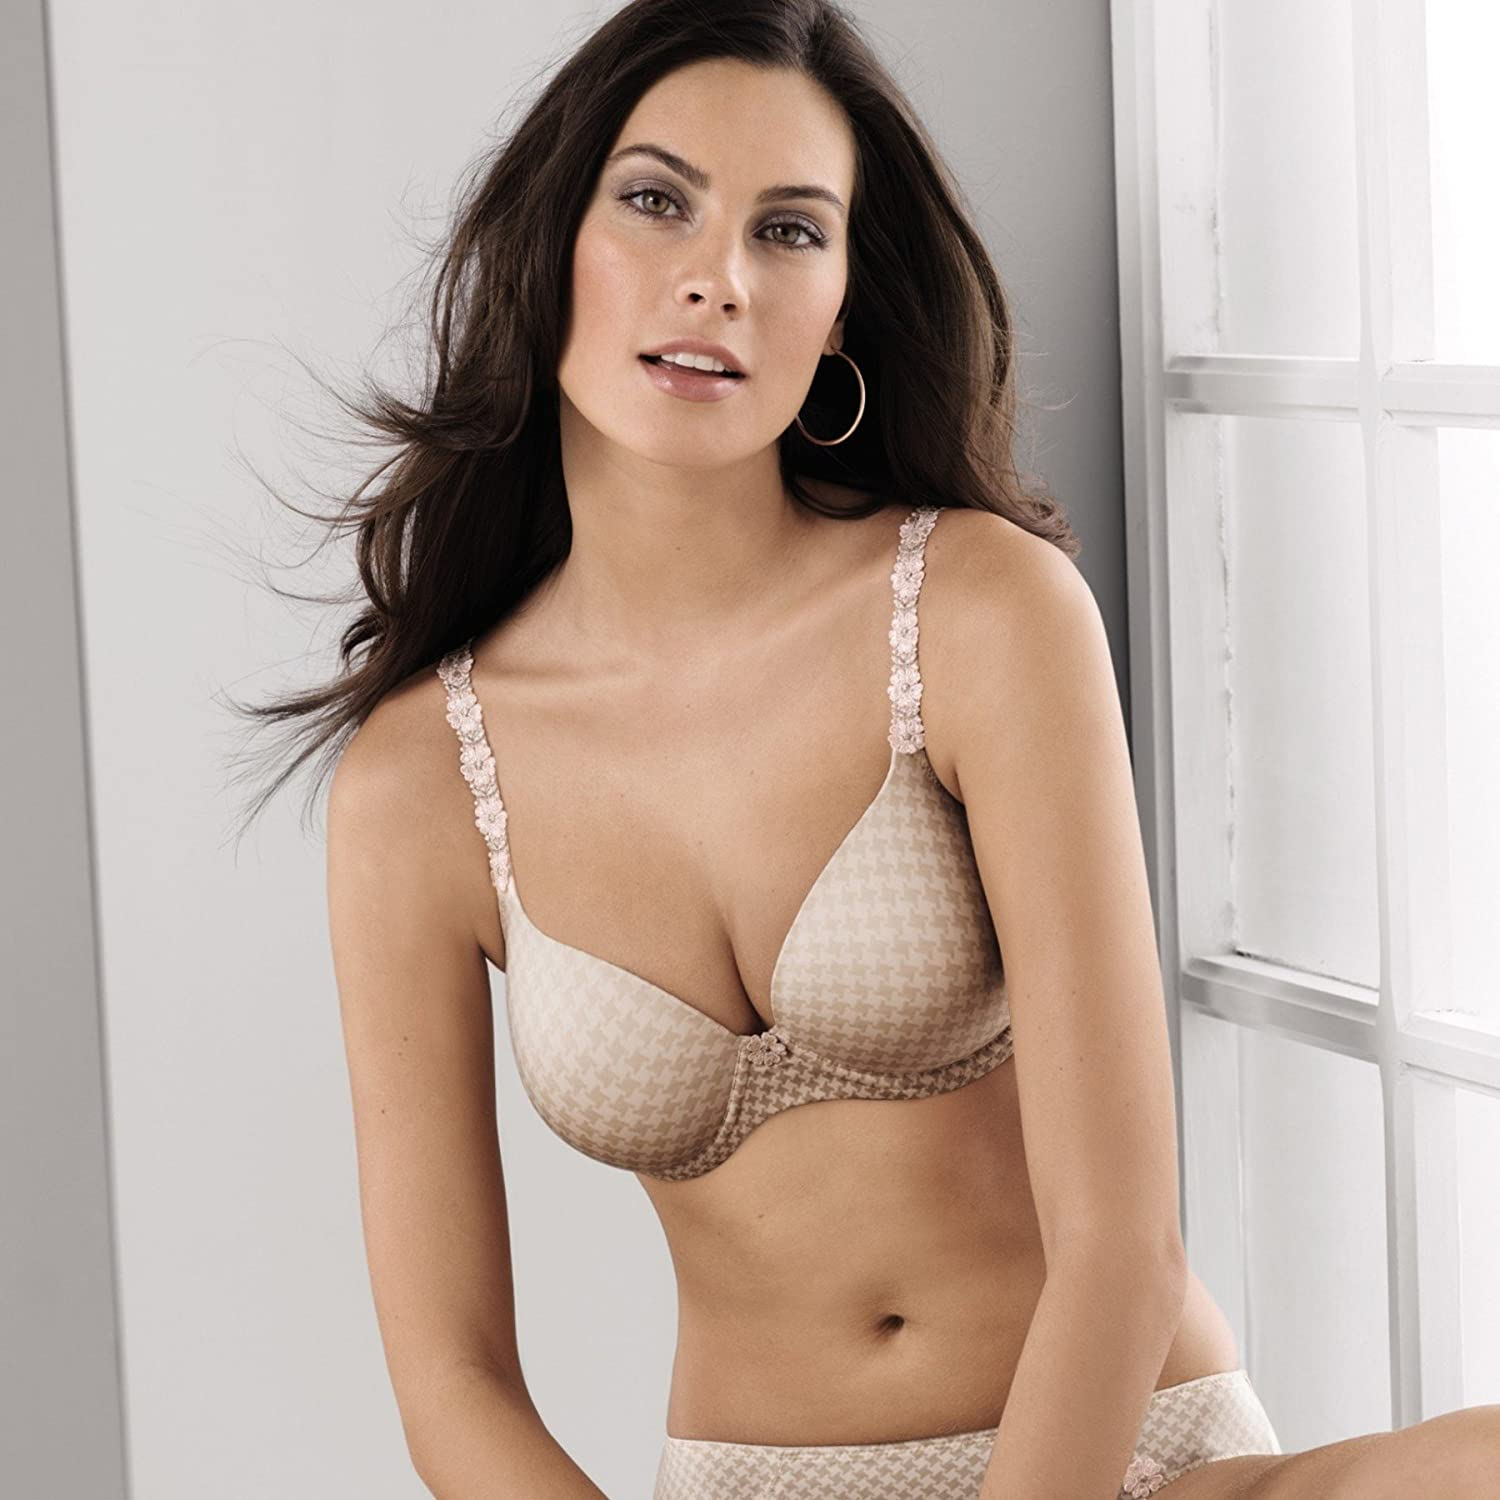 RosaFaia Josephine Womens Padded Contour Underwired Bra, 32F, Pearl Rose